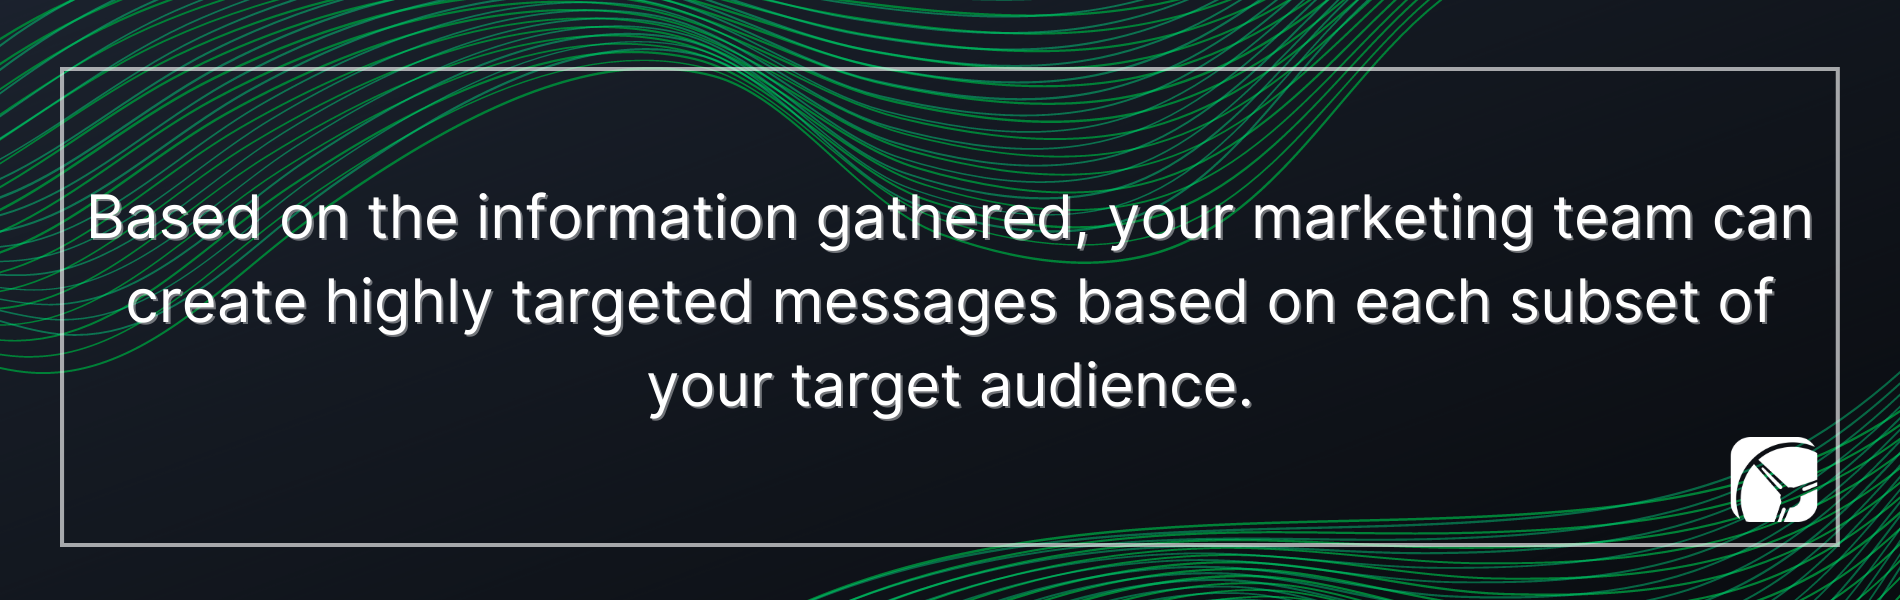 Based on the information gathered, your marketing team can create highly targeted messages based on each subset of your target audience.